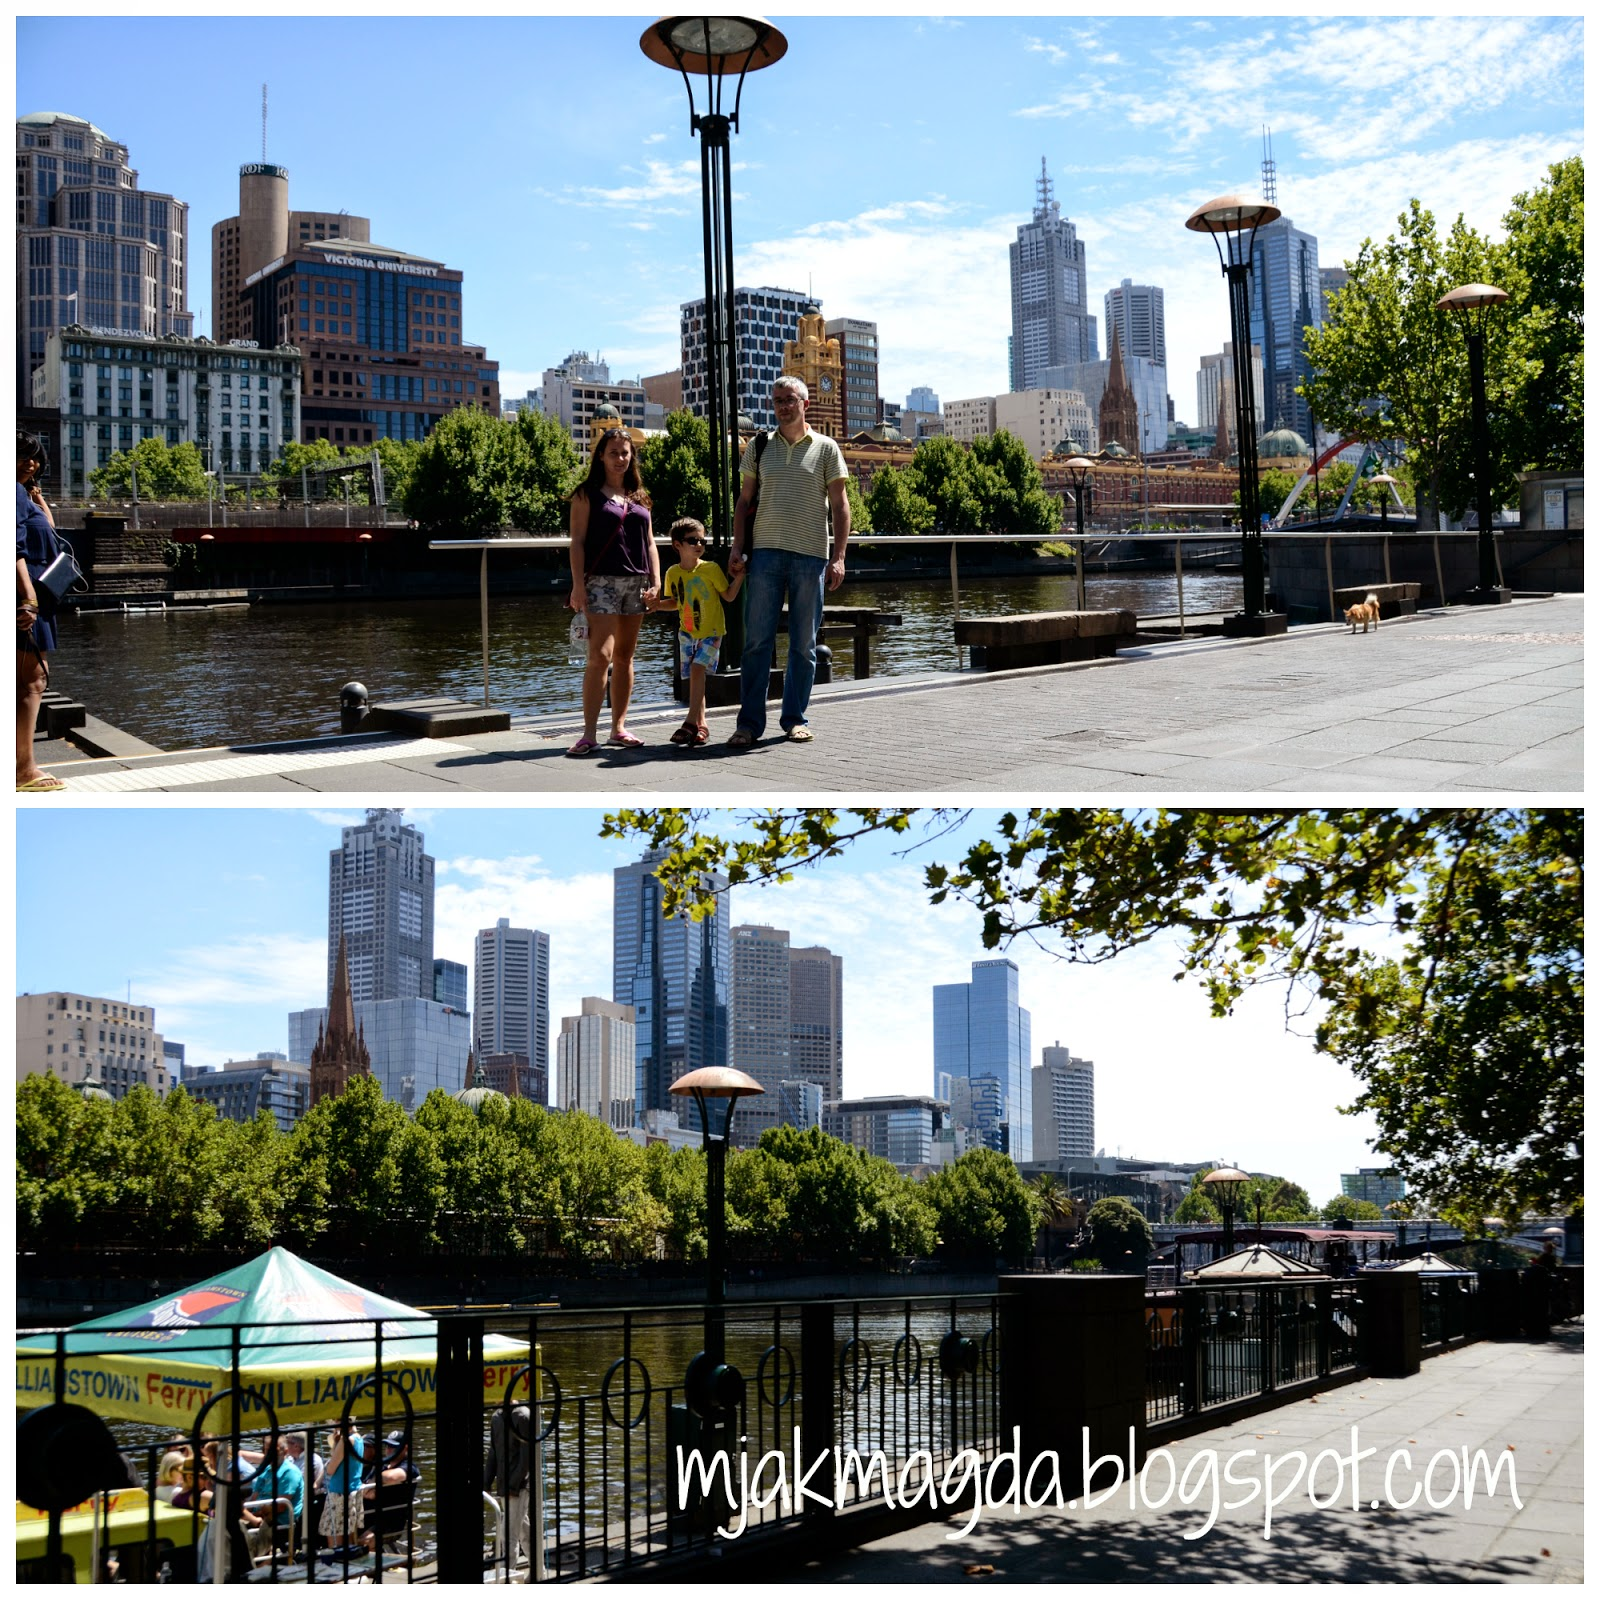 australia, australijski, podróż, lot, samolot, antypody, kierunek, ocean, emirates, melobourne, city, sydney, caberra, eureka tower, qeen victoria market, qeen victoria buildings, dandenong, aborygeni, zwiedzanie, wakacje, turysta, sasafrass, olinda, las deszczowy, busz, kakadu, koala, kangur, womabat, Philip Island, opera, dwunastu apostołów, great ocean road, plaża, zatoka, australia , australian, travel , flight , plane, antipodes , direction, ocean, emirates , melobourne , city , sydney , caberra , eureka tower , qeen victoria market, qeen victoria buildings , Dandenong, aborigines , sightseeing , vacation, tourist, sasafrass , olinda , rainforest , bush , cockatoo , koala , kangaroo, womabat , Philip Island , the opera , the twelve apostles , great ocean road , beach , bay, dubai, Dubaj, stolica, miasto, lotnisko, airport